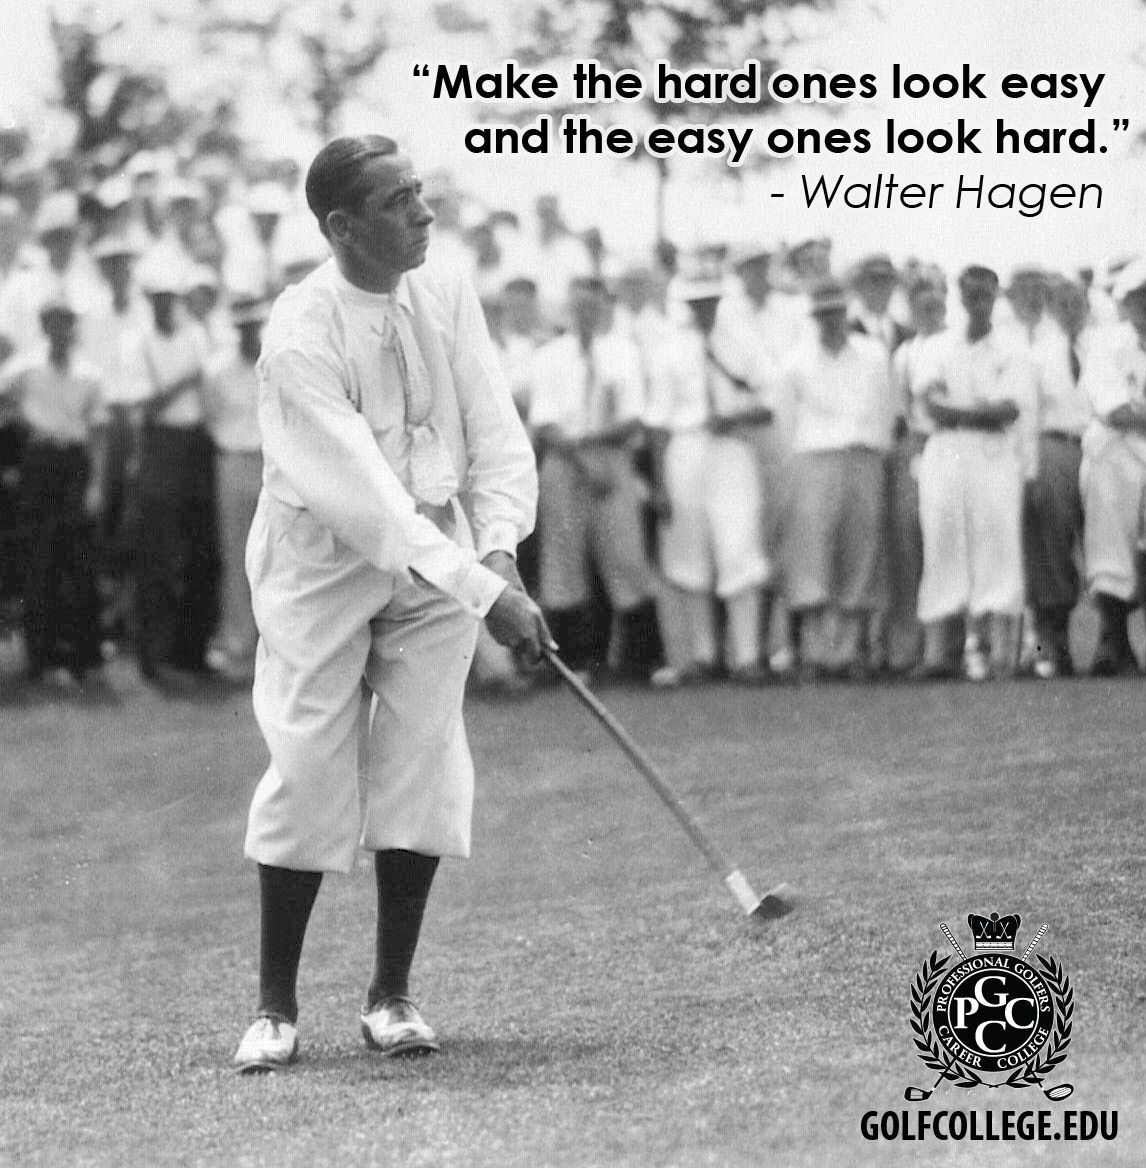 Today we tip our cap to Sir Walter Hagen, who was born on